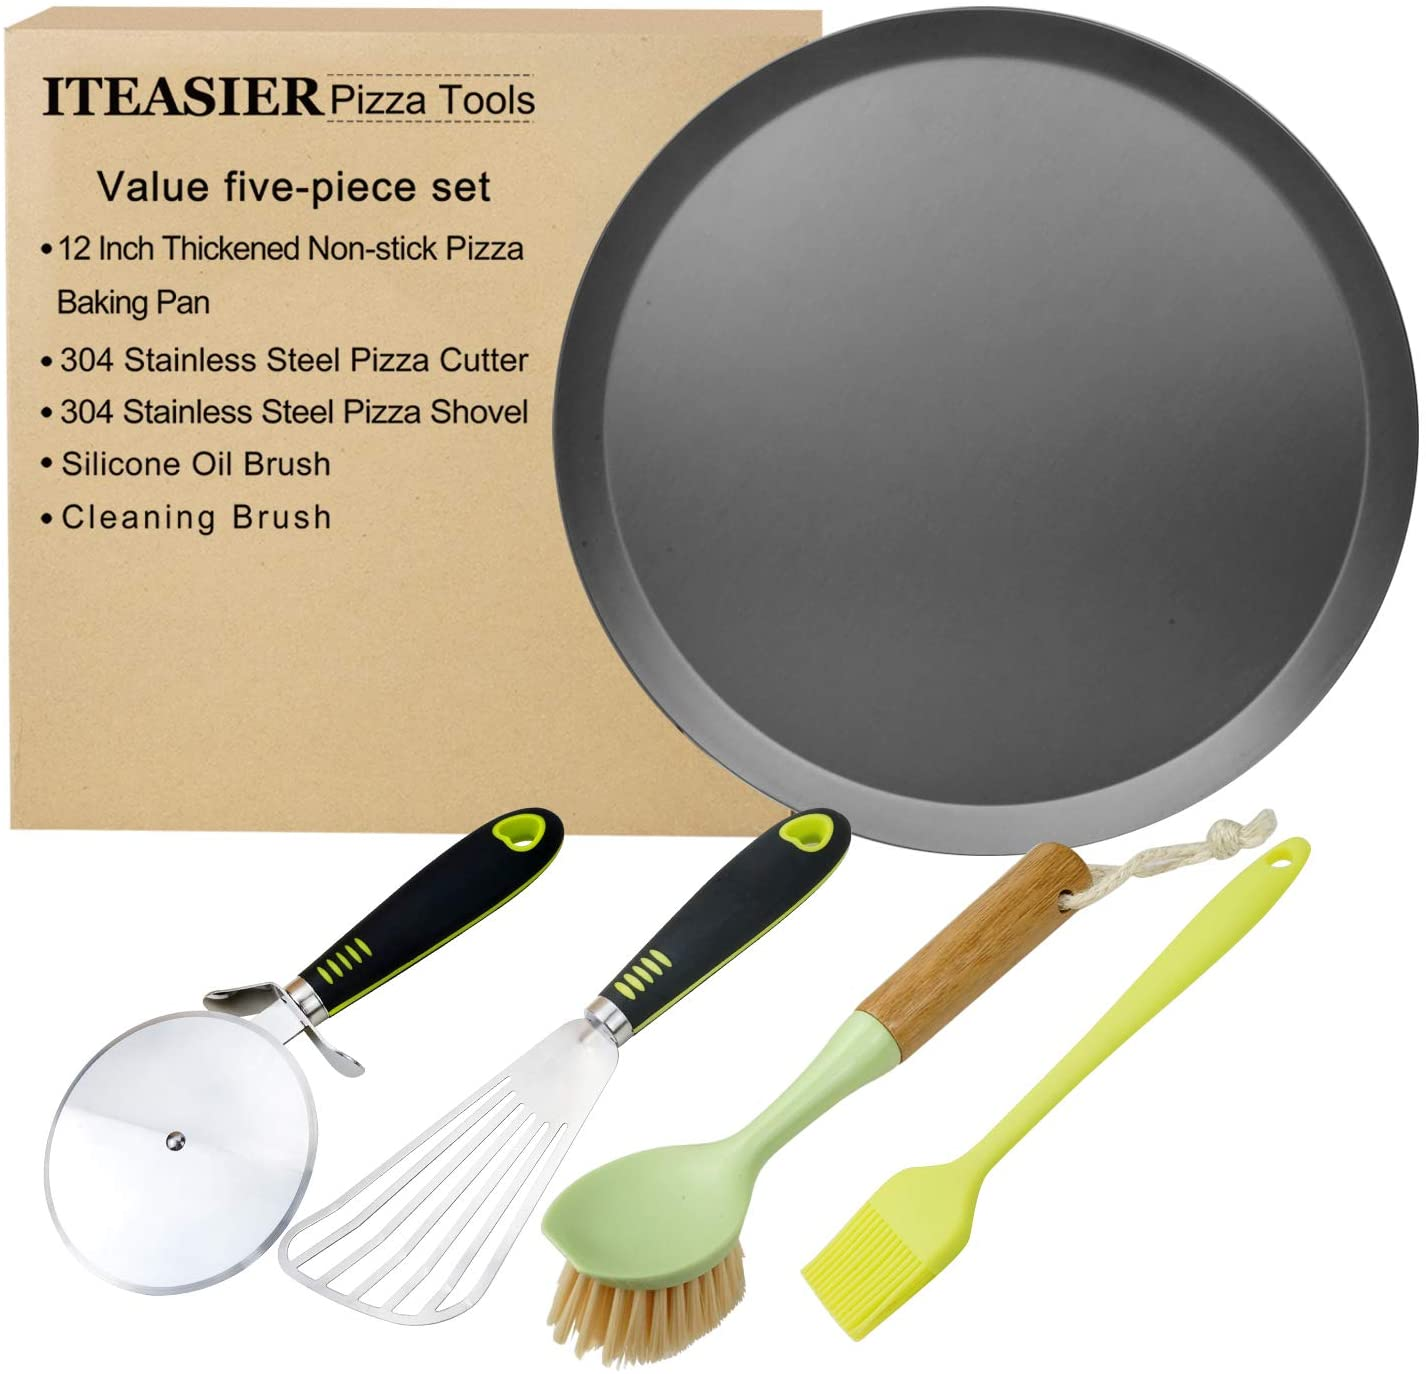 ITEASIER Good Pizza Making Toolkit,12 Inch Thickened Non-stick Pizza Baking Pan,Pizza Cutter,Pizza Shovel, Oil Brush,Cleaning Brush